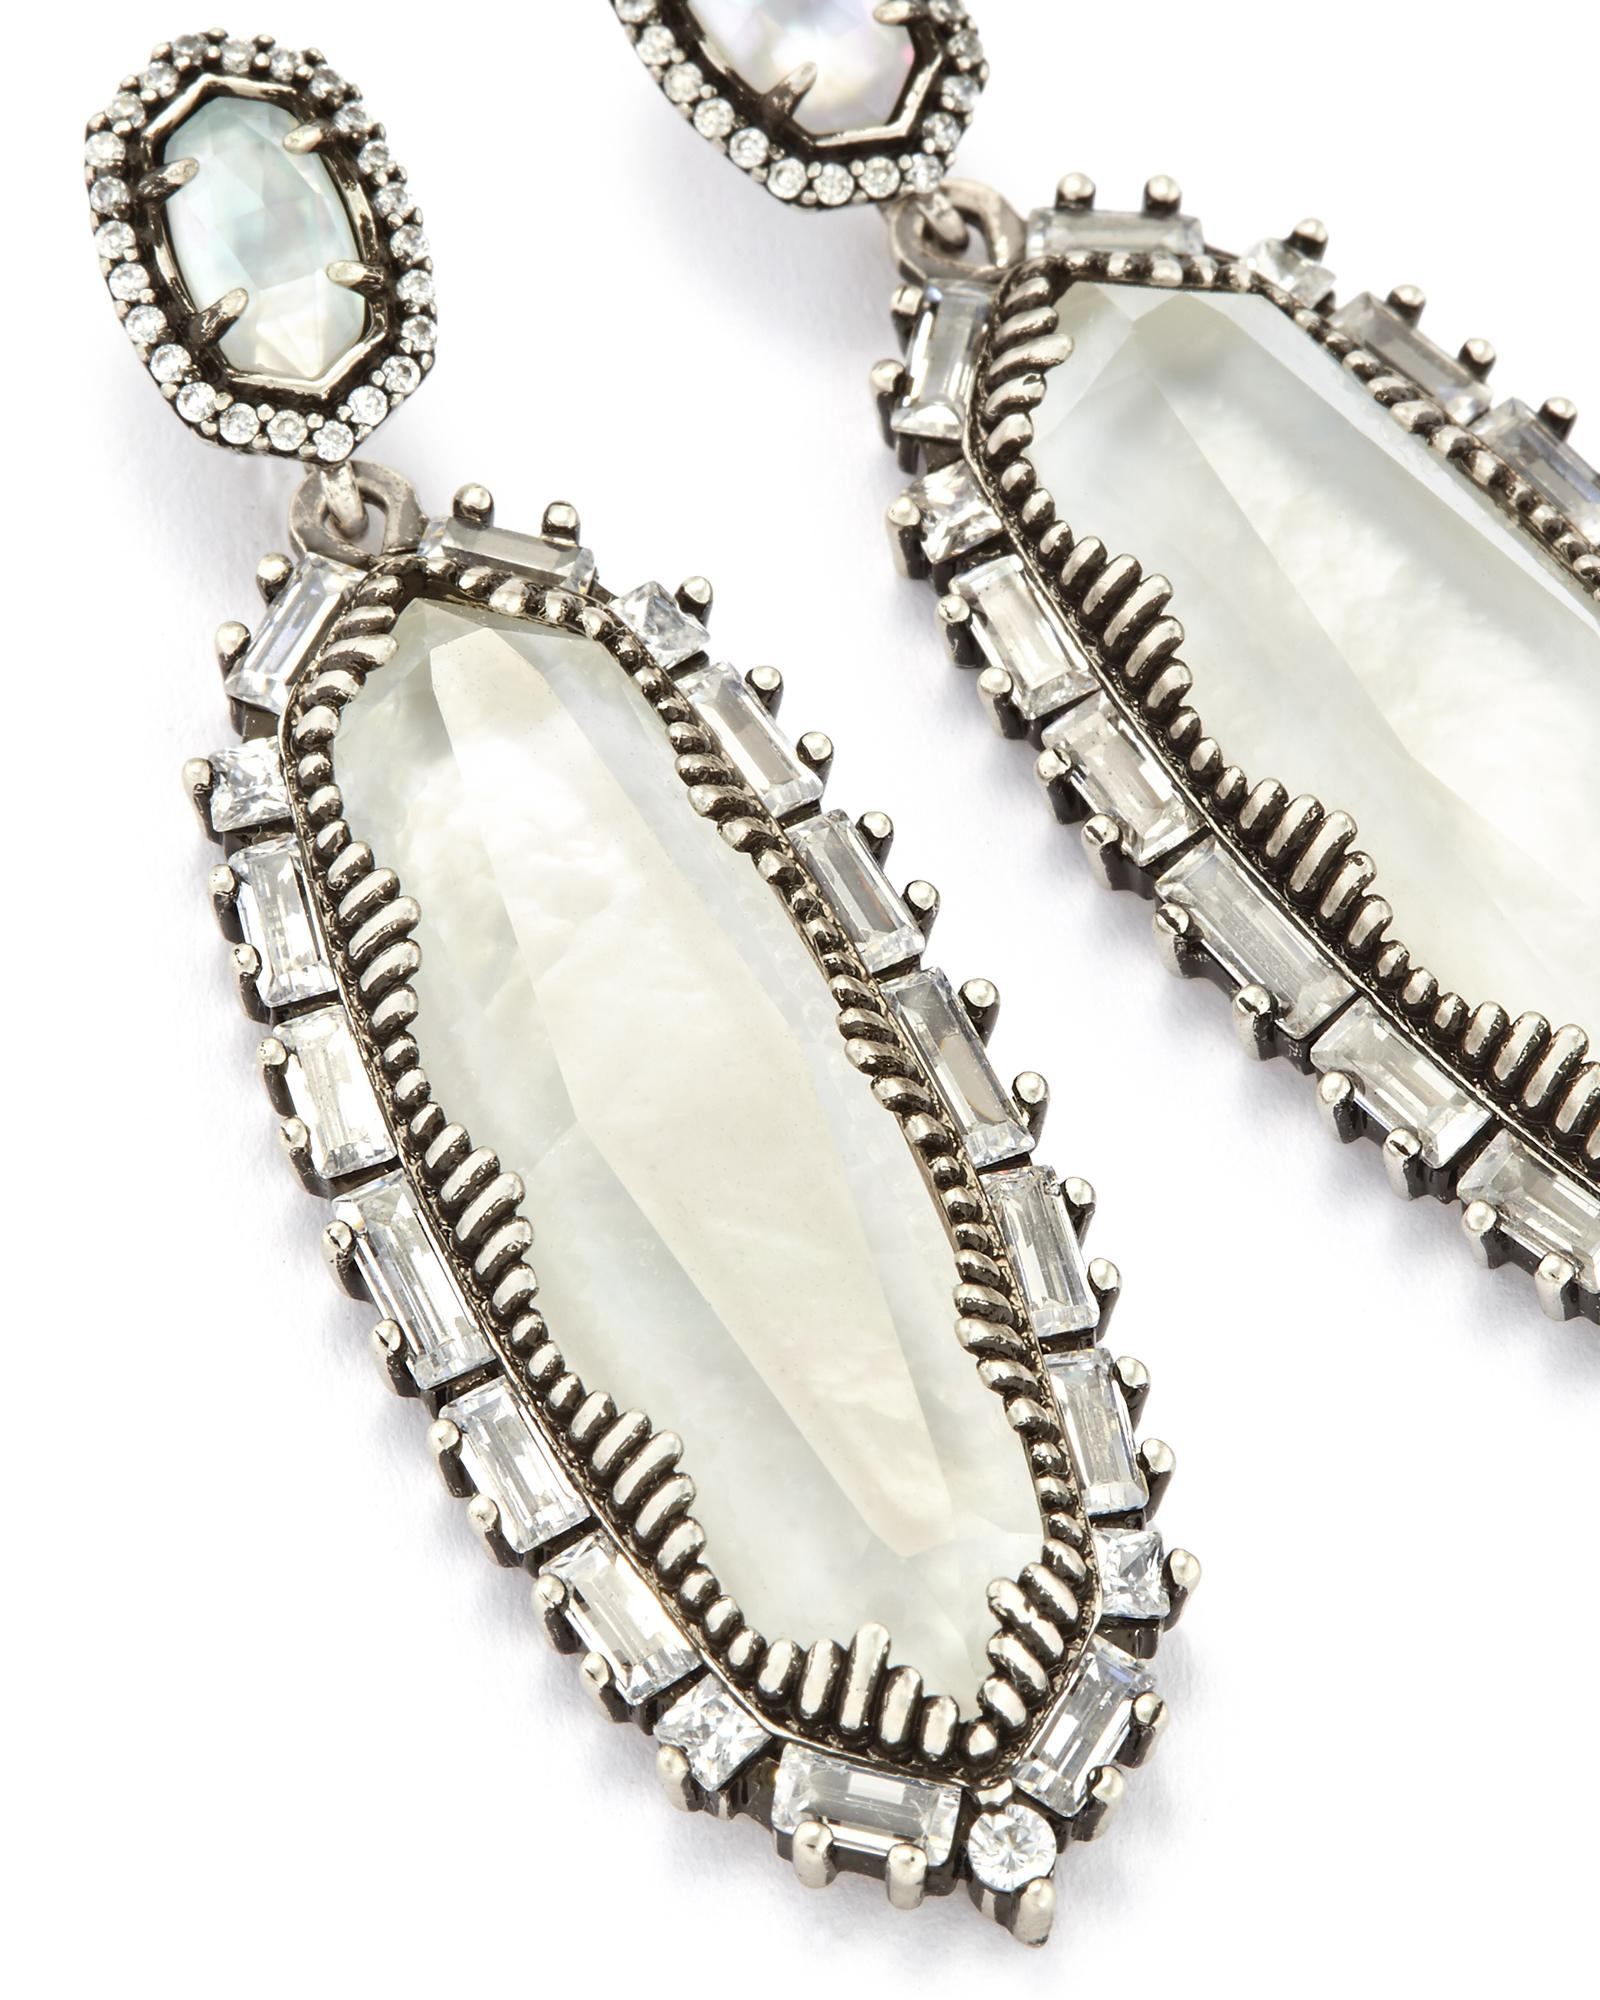 Kalina Statement Earrings in Antique Silver